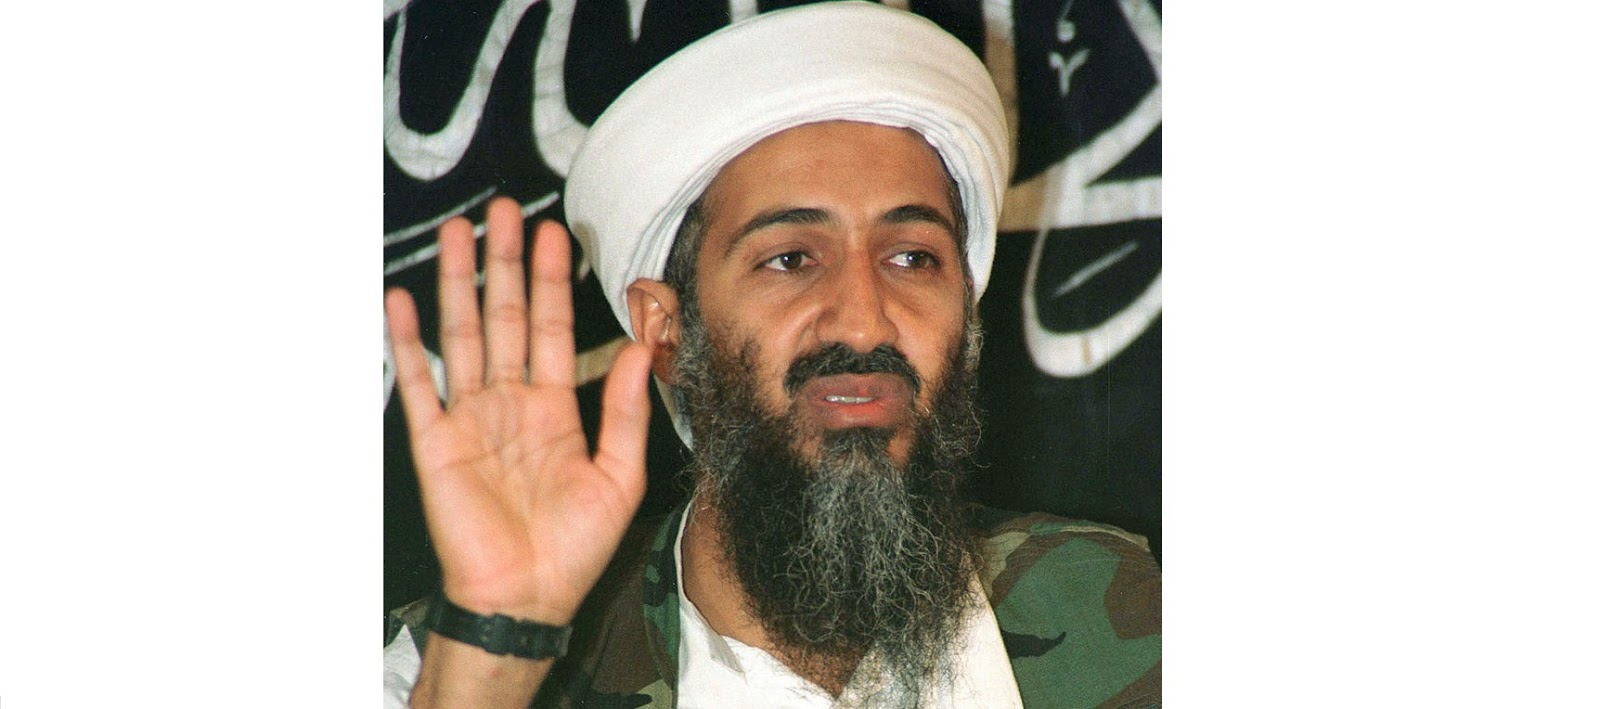 Why photos of bin Laden s body won t ever be shown - Business Insider Osama bin laden raid pictures